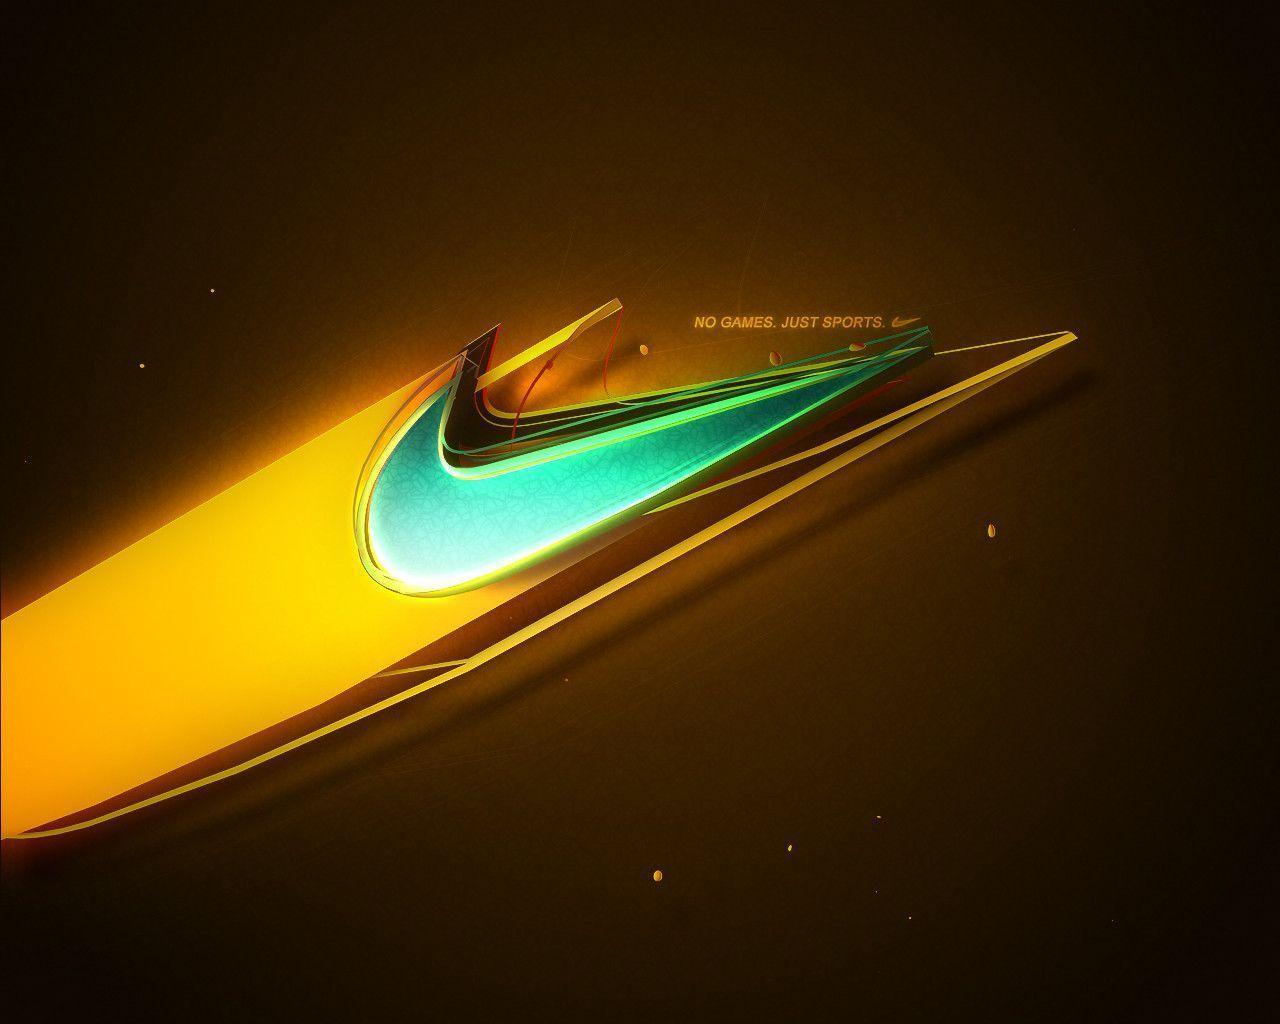 nike wallpapers backgrounds Wallpapers HD Image 4039